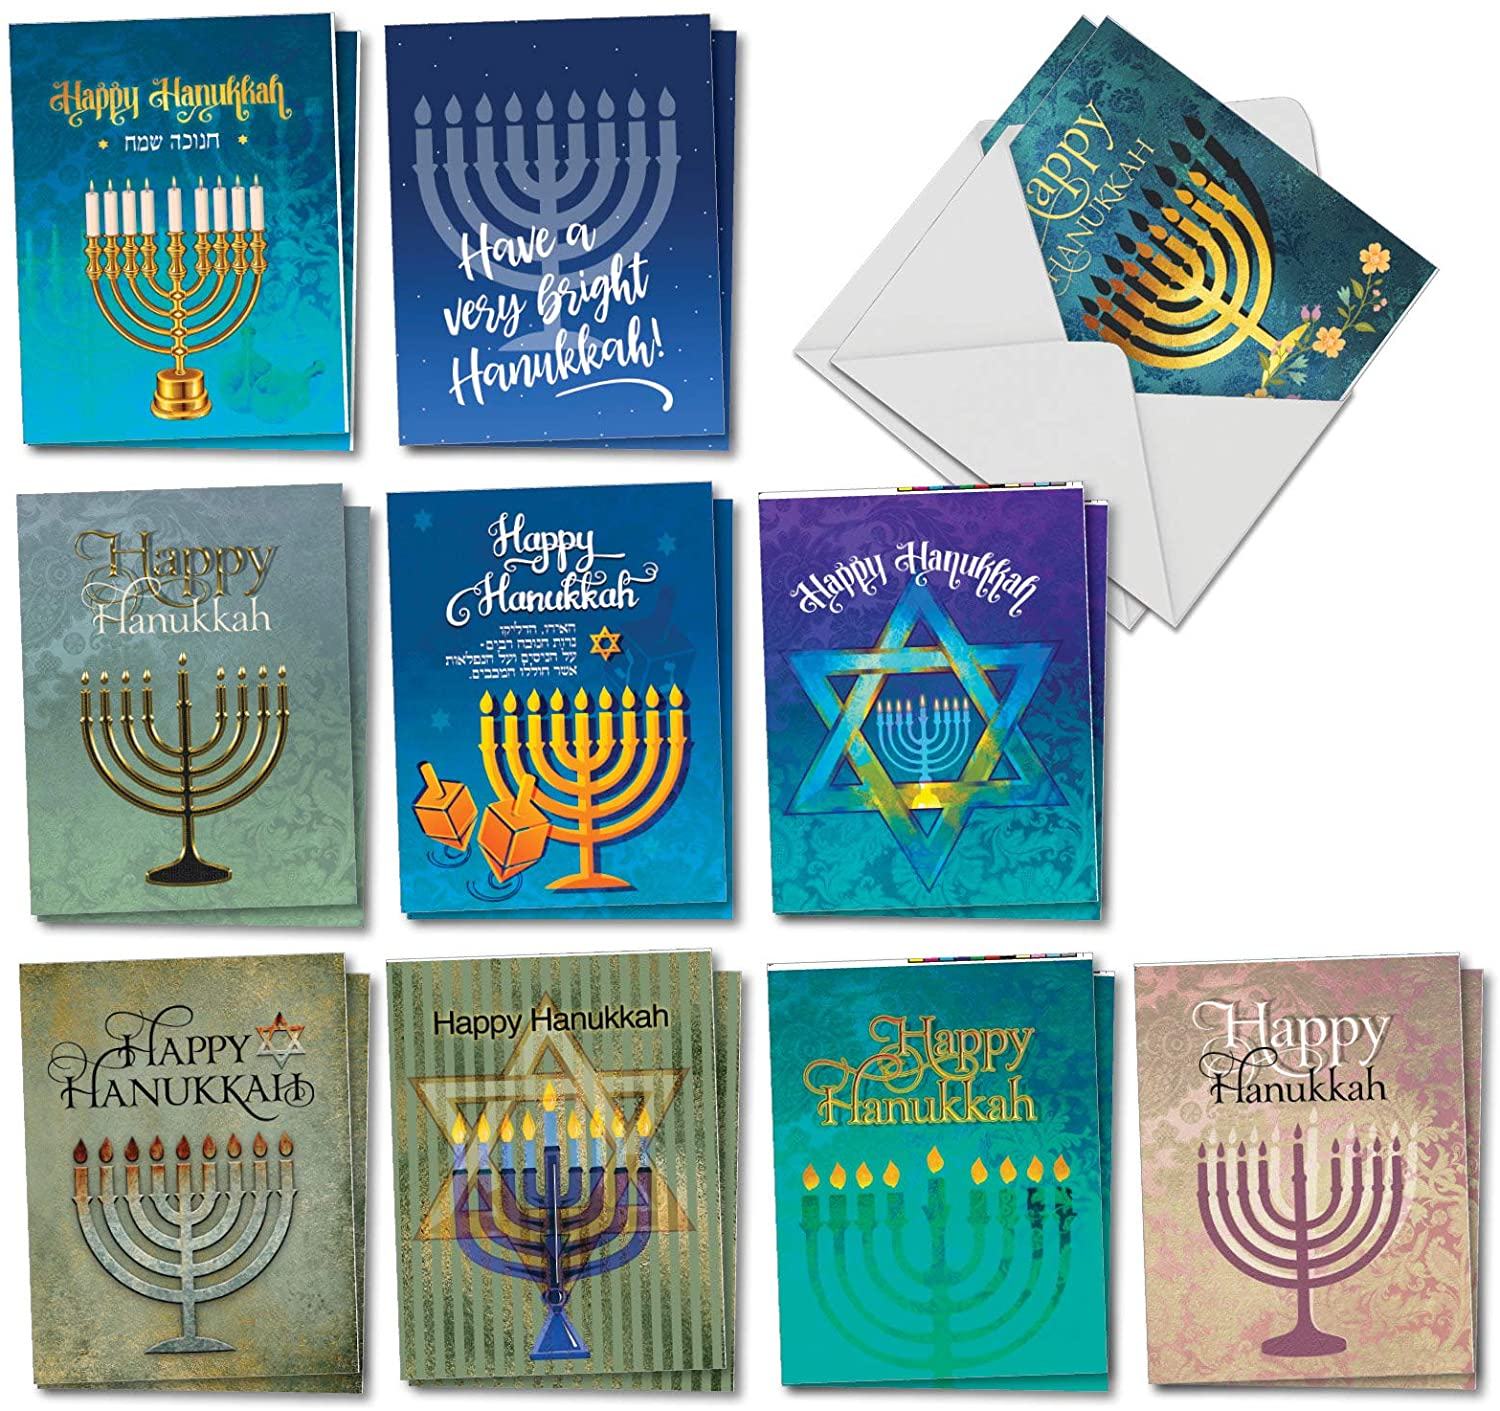 Hanukkah Lights - 20 Festive Happy Hanukkah Greeting Cards with Envelopes (4 x 5.12 Inch) - Box of Assorted Religious Jewish Holiday Note Cards (10 Designs, 2 Each) AM6140HKG-B2x10